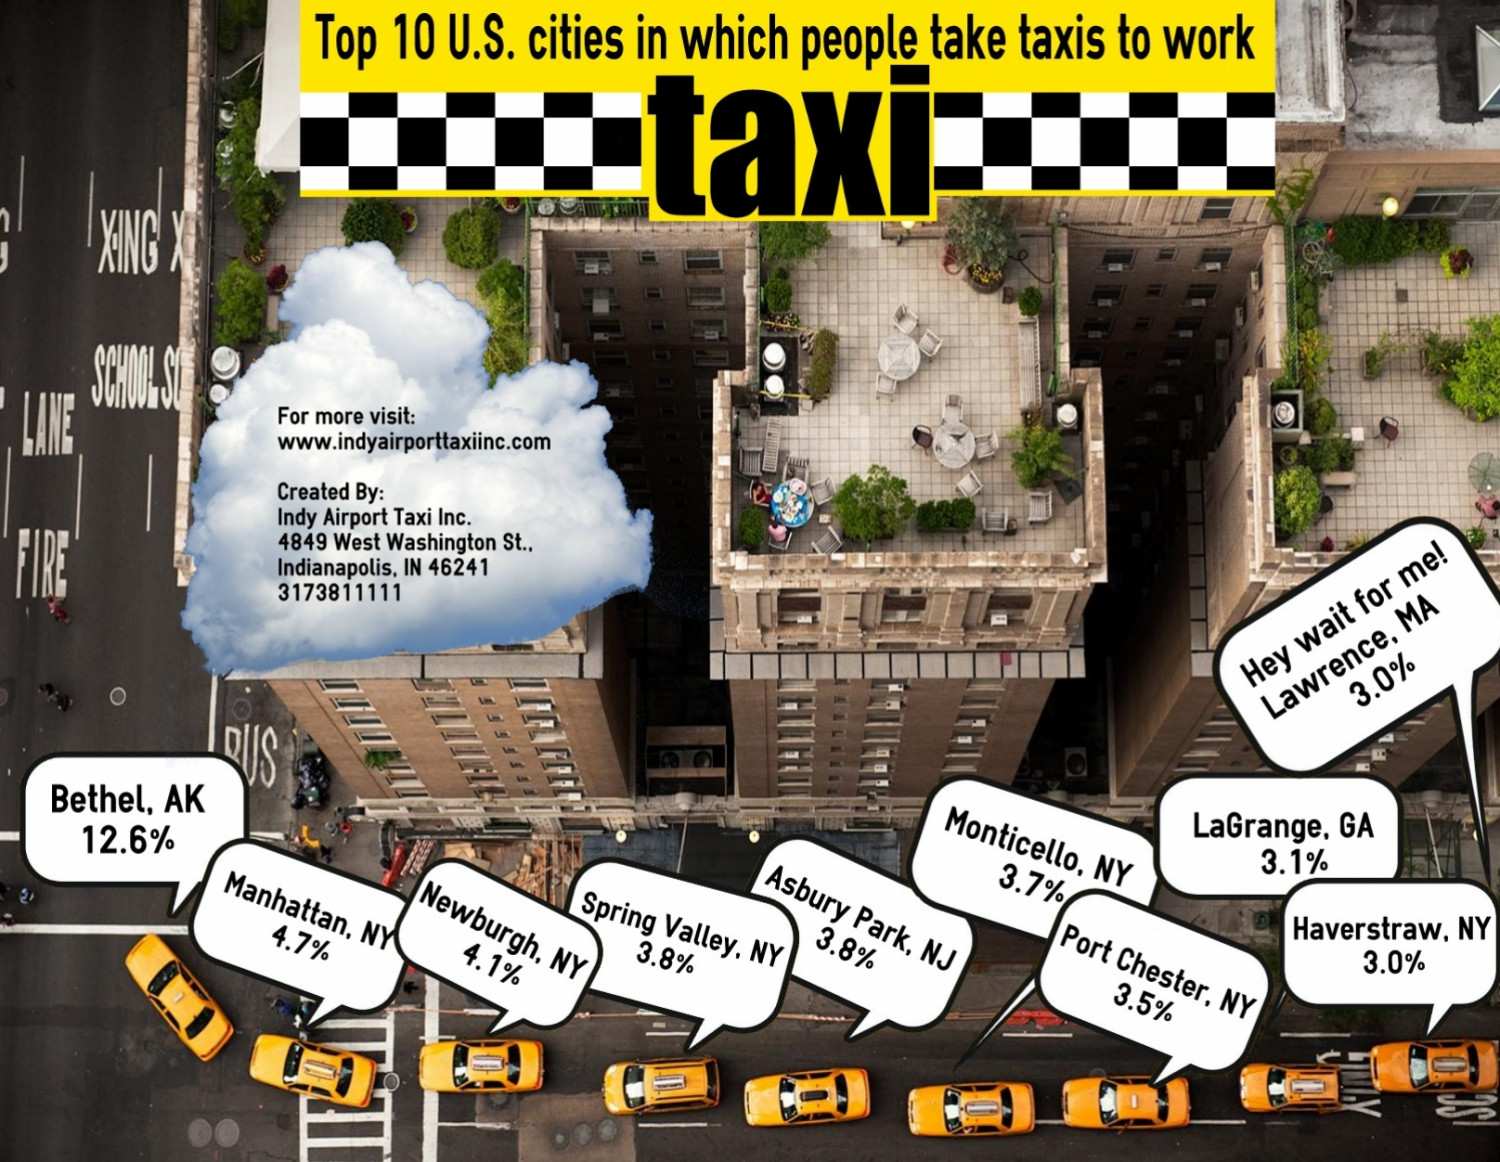 Top 10 US Cities in Which People Take Taxis to Work Infographic